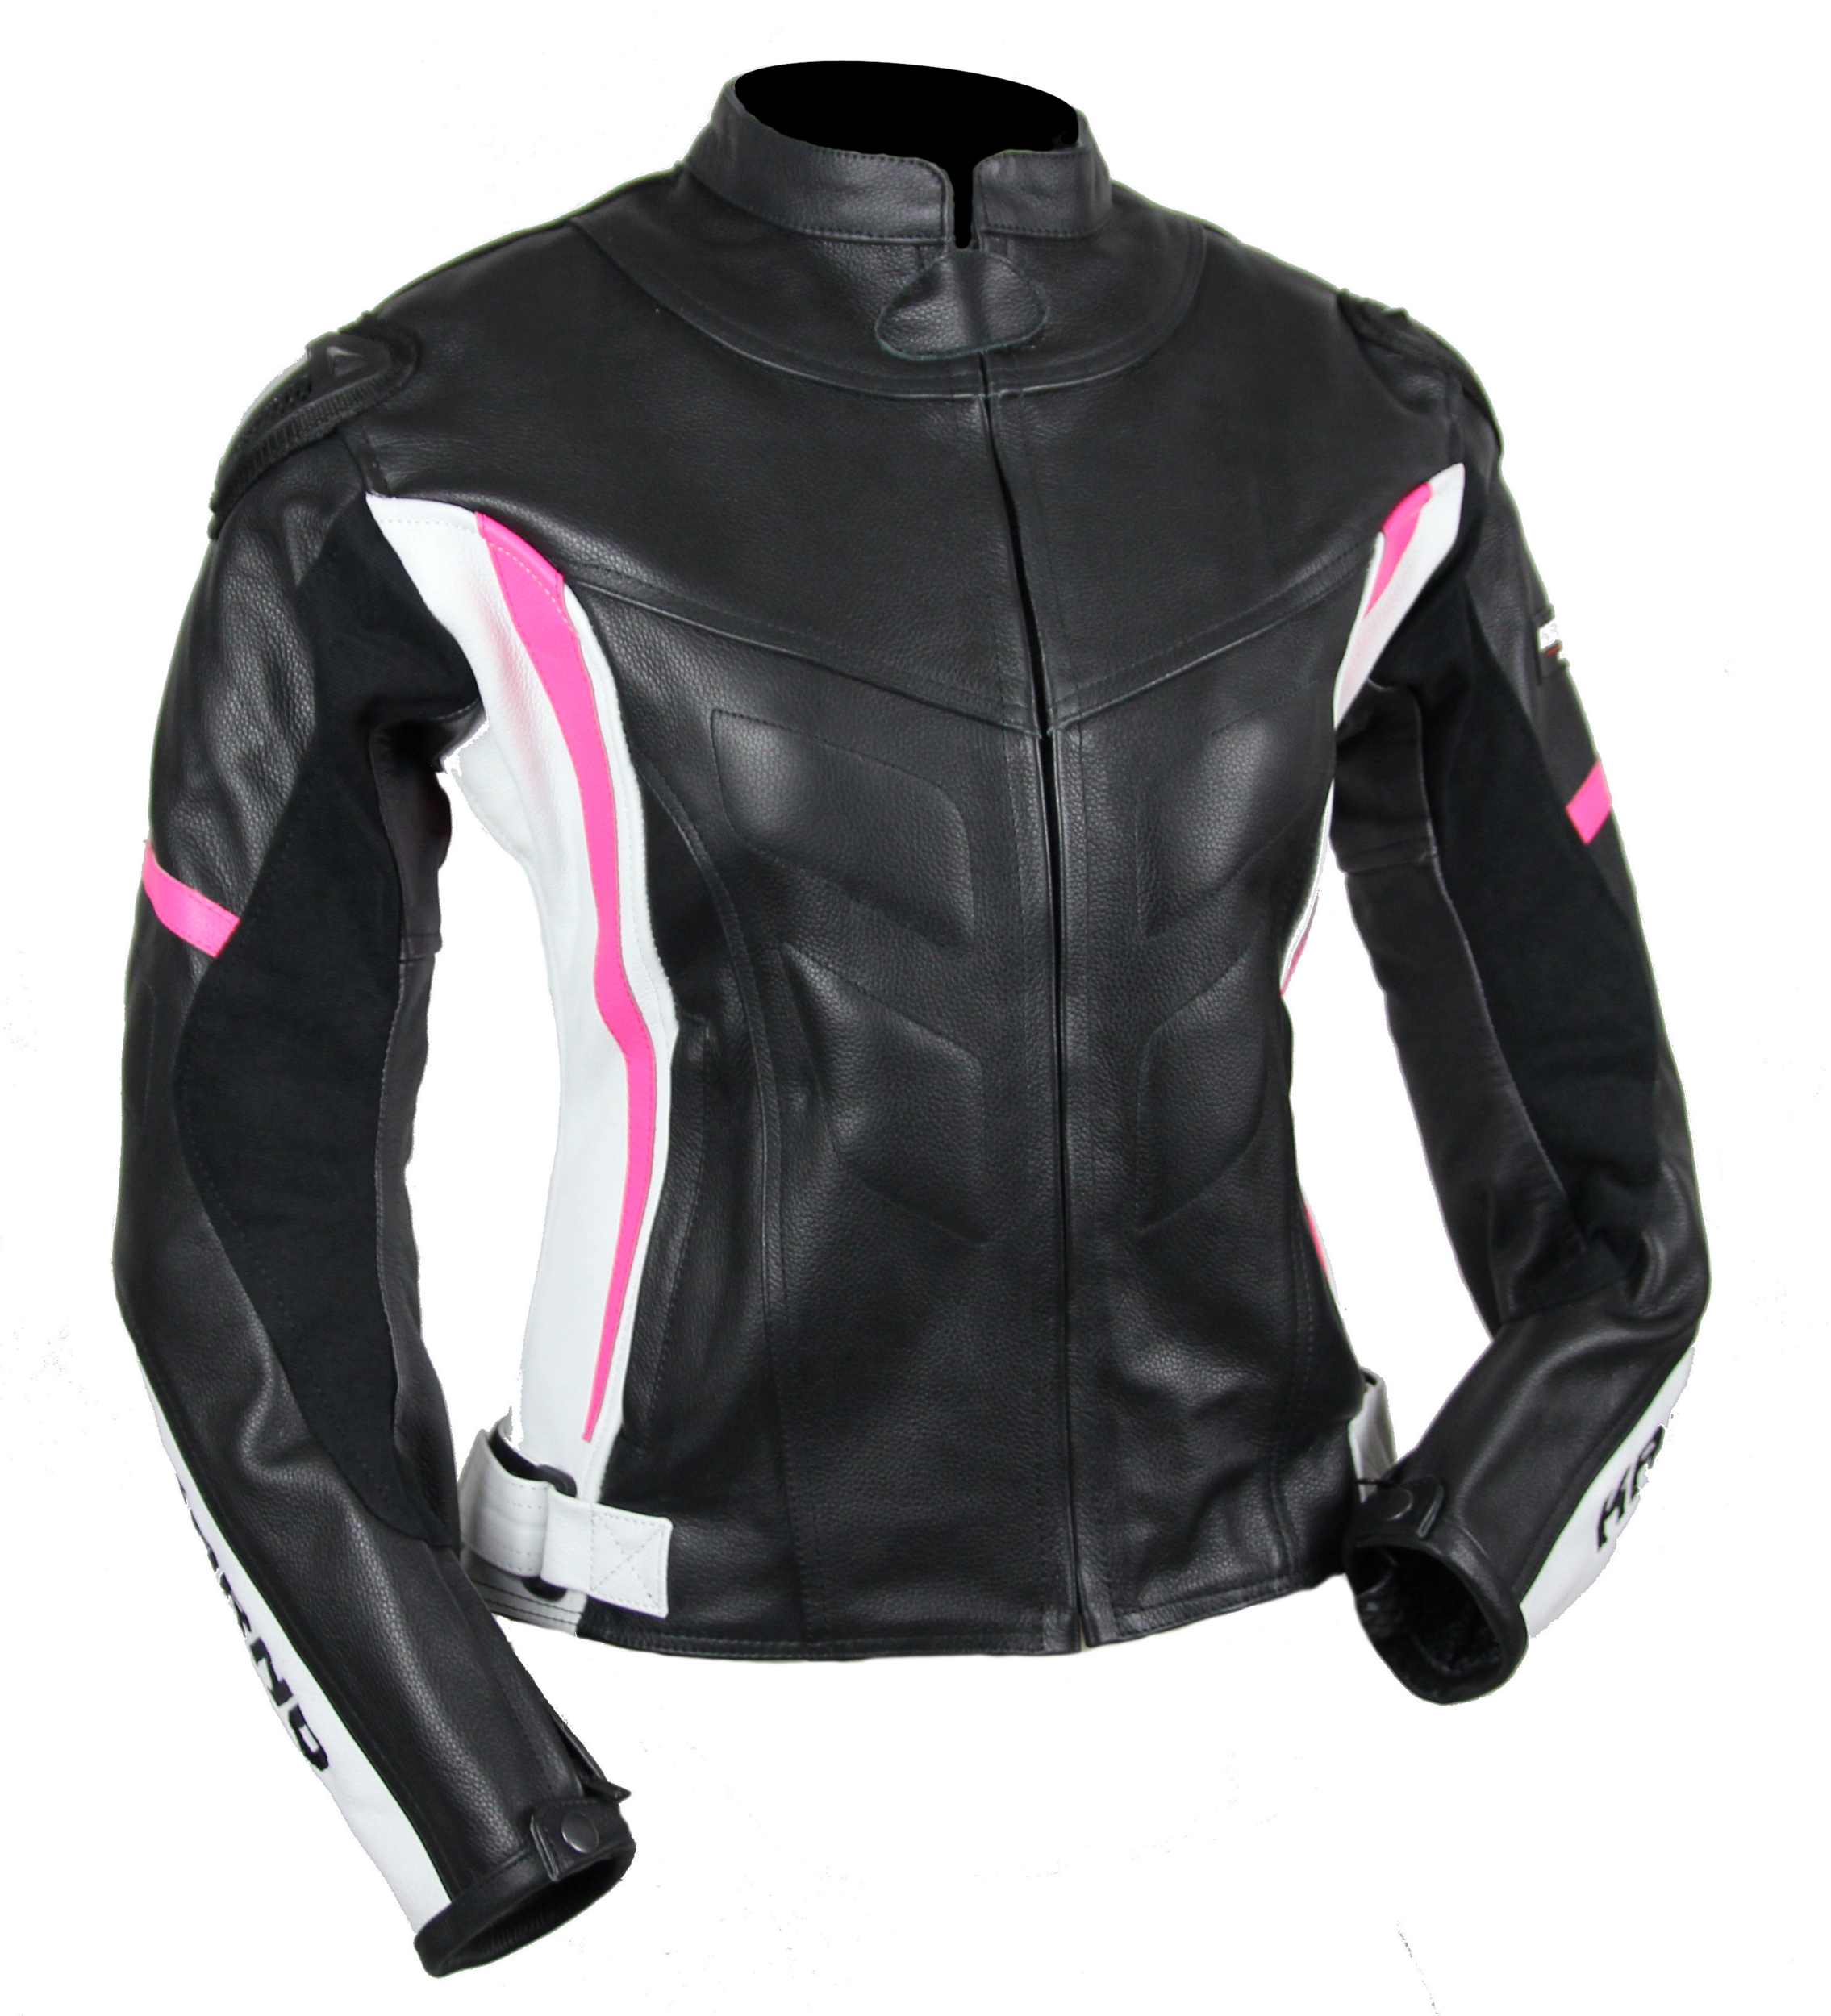 kc036 blouson moto cuir femme lady gp karno motorsport rose fluo. Black Bedroom Furniture Sets. Home Design Ideas